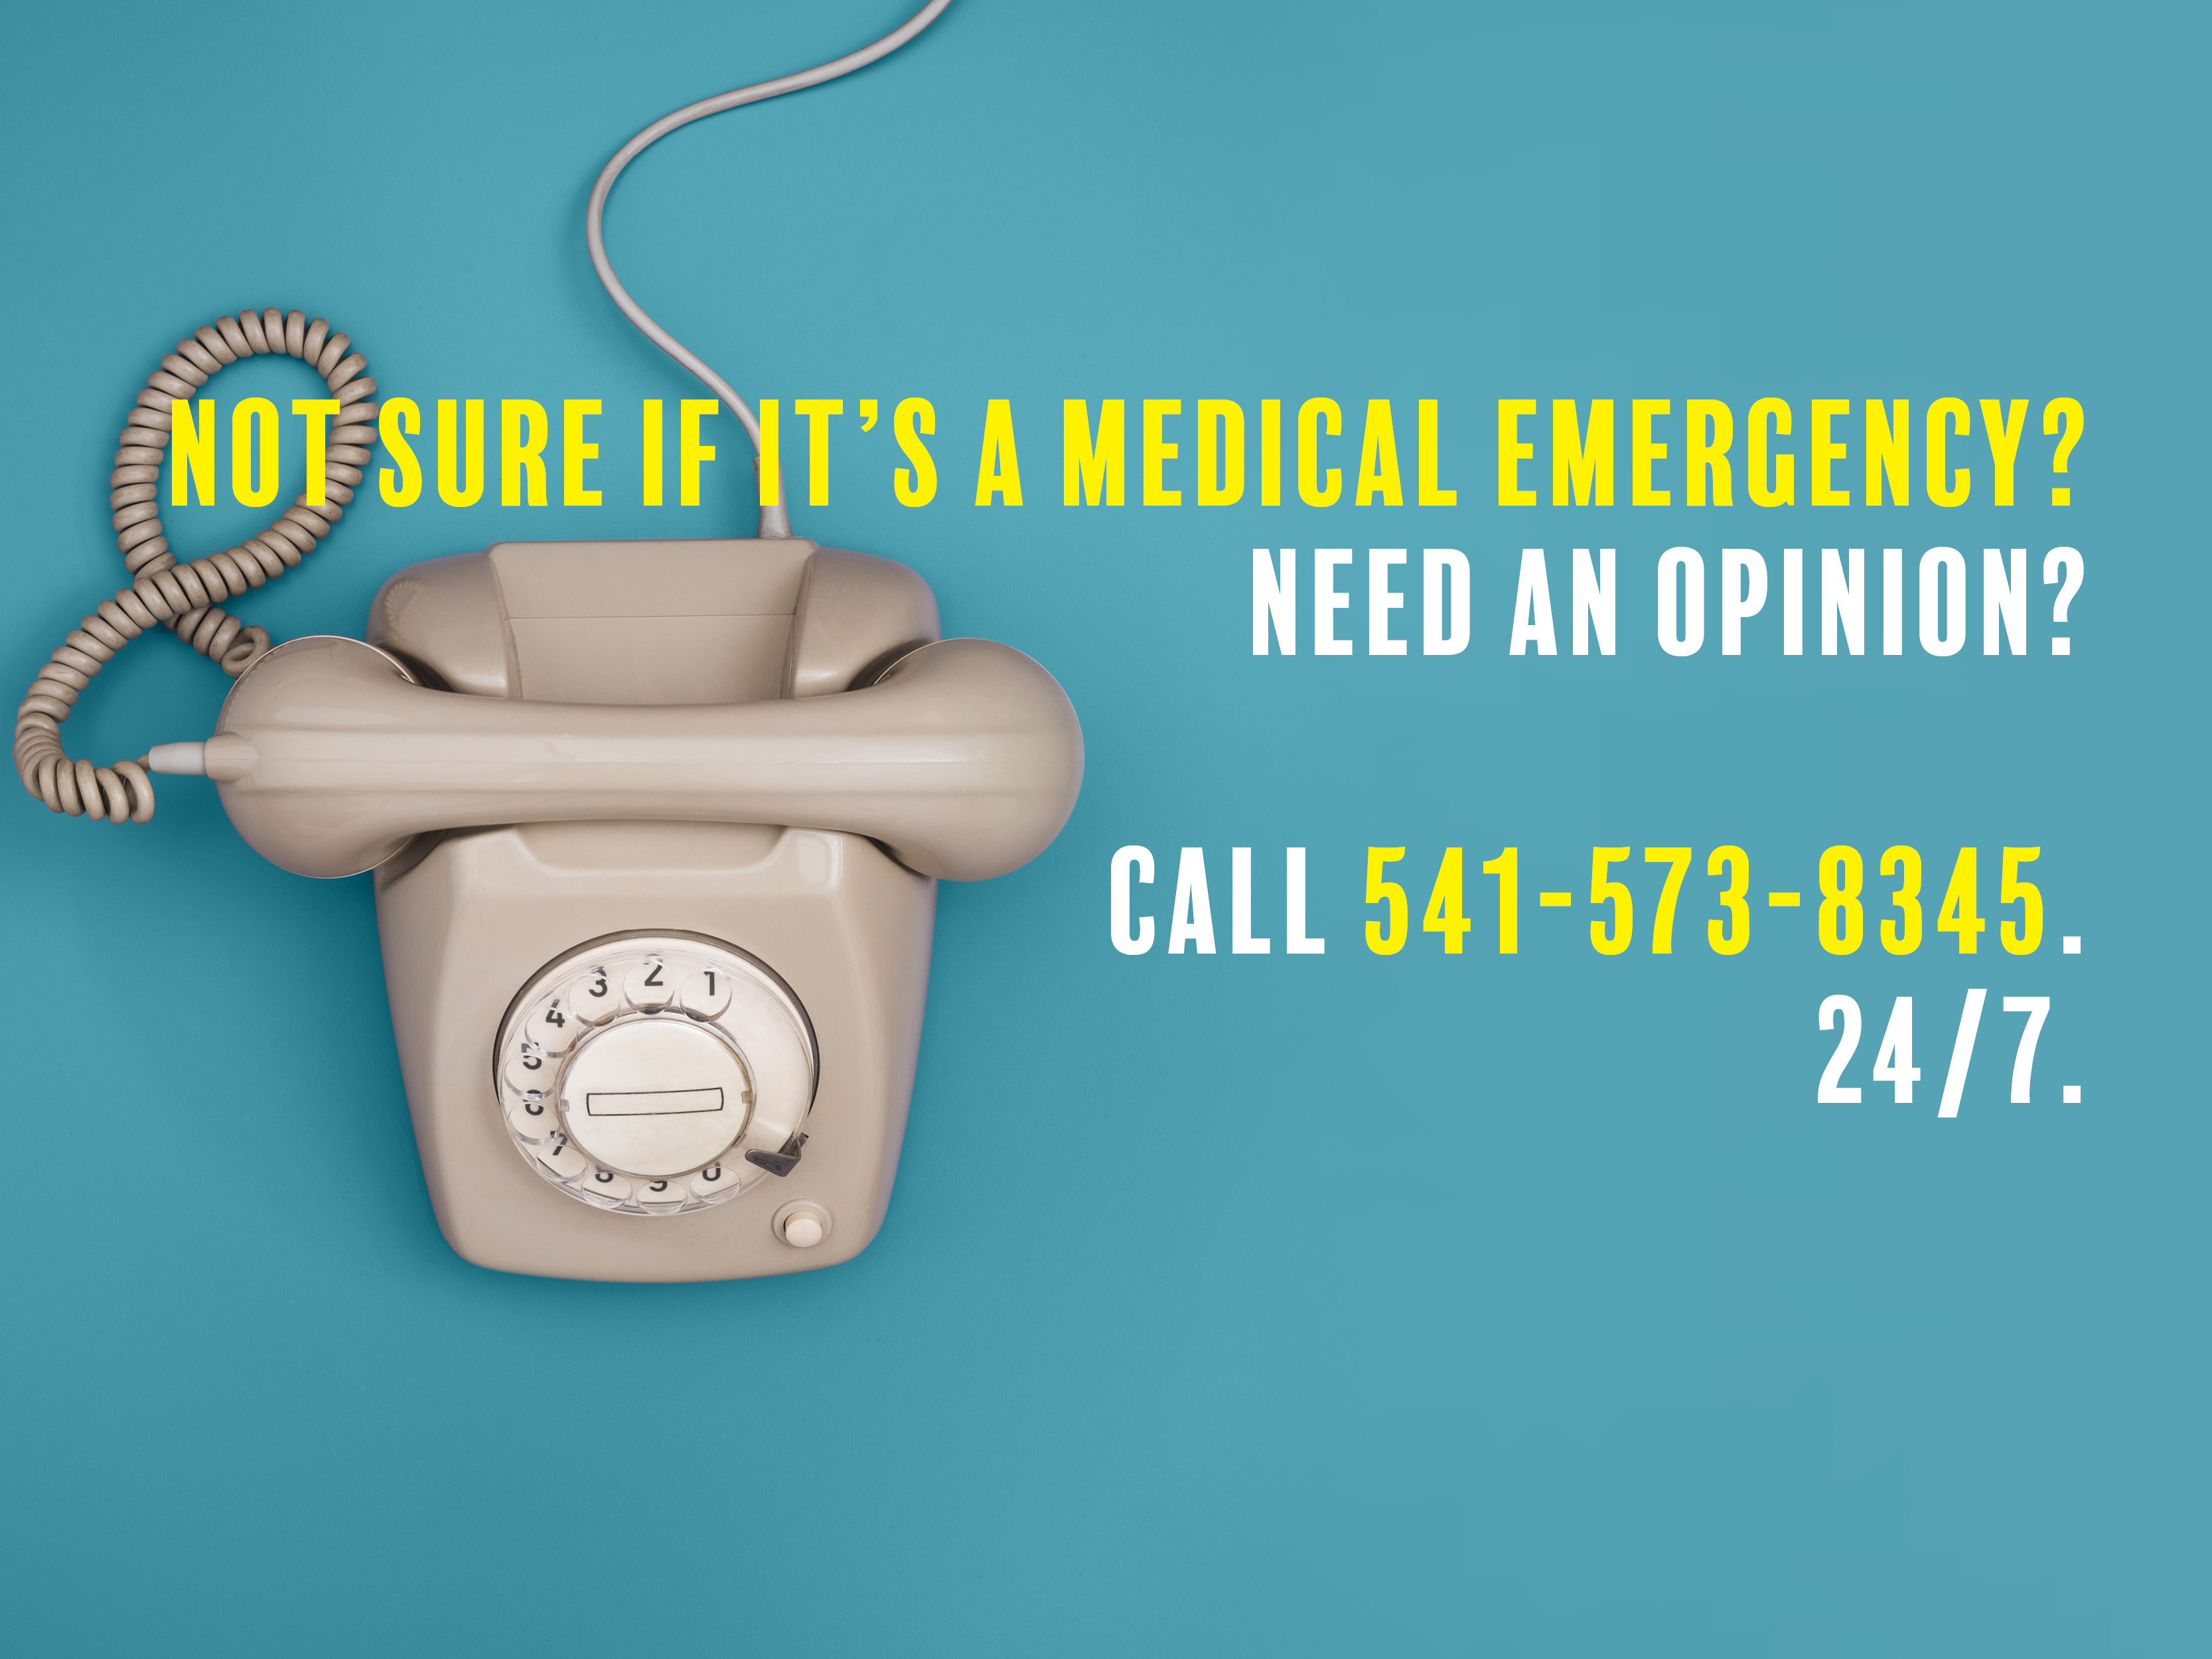 Not sure if it is an emergency? Call 541-573-8345